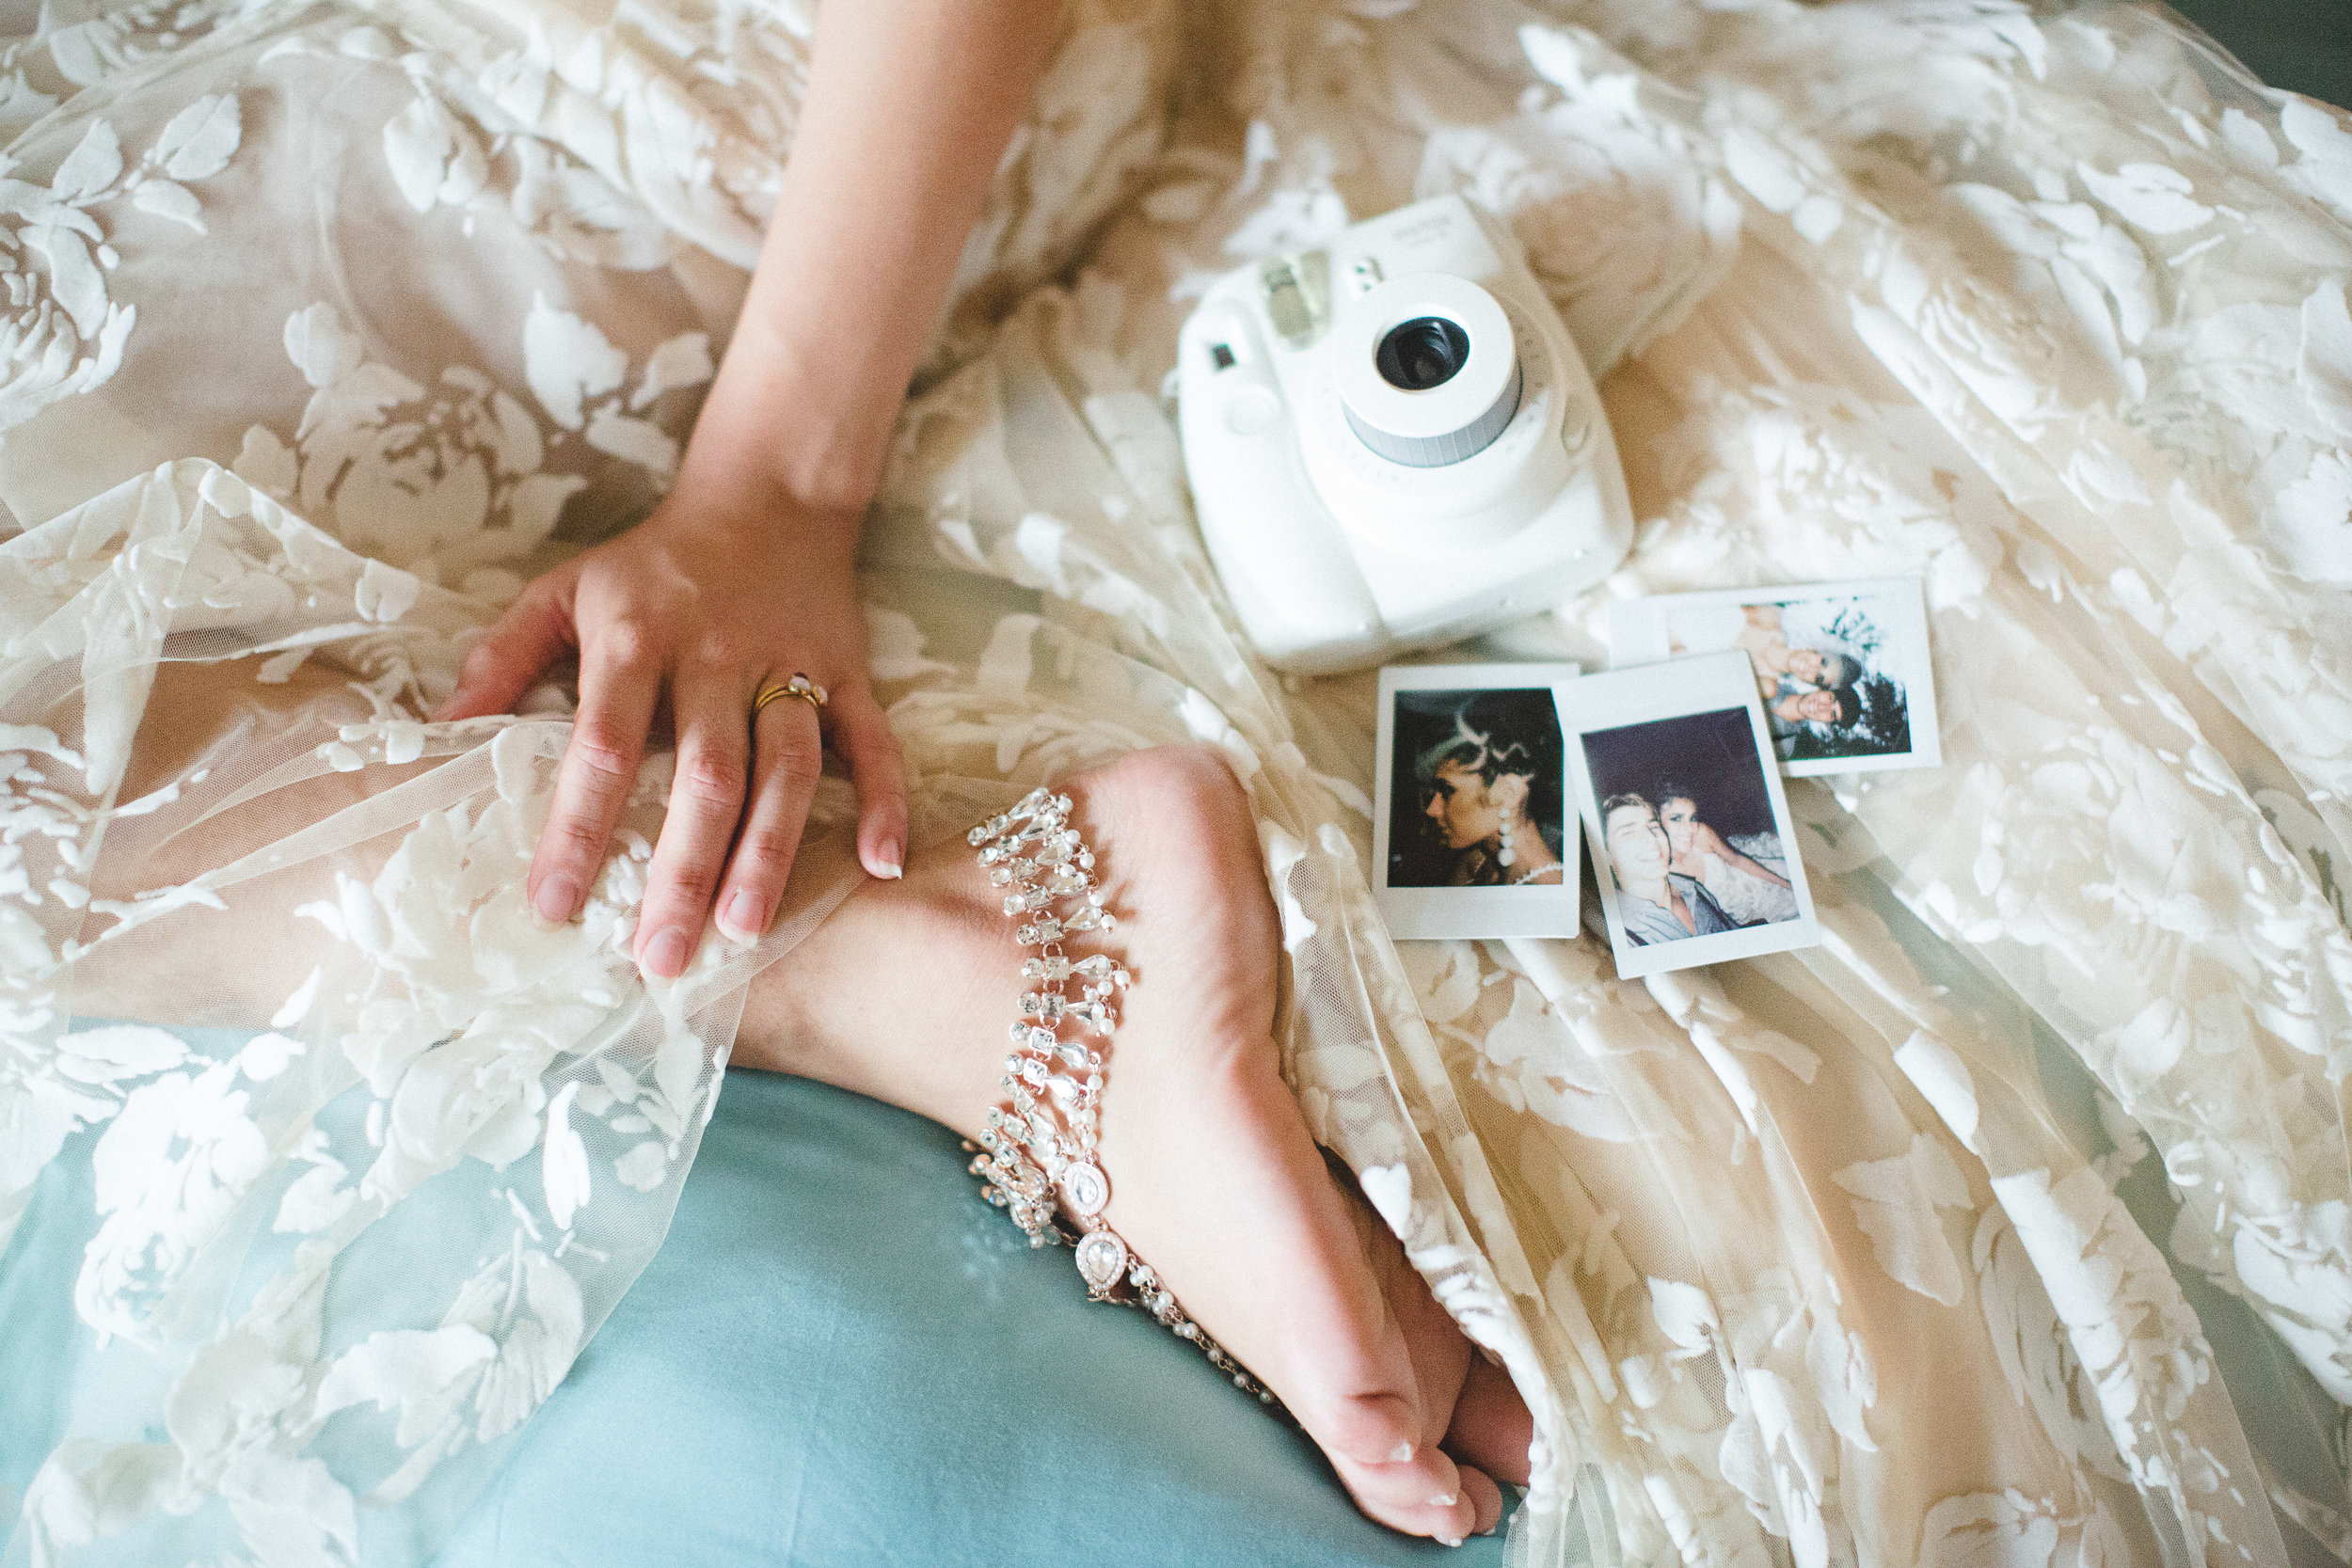 izzy-hudgins-photography-emily-burton-designs-ivory-and-beau-bridal-boutique-daughters-of-simone-sonje-jenny-yoo-bridesmaids-glamping-wedding-boho-wedding-outdoor-wedding-coldwater-gardens-wedding-savannah-bridal-boutique-savannah-wedding-planner-31.jpg